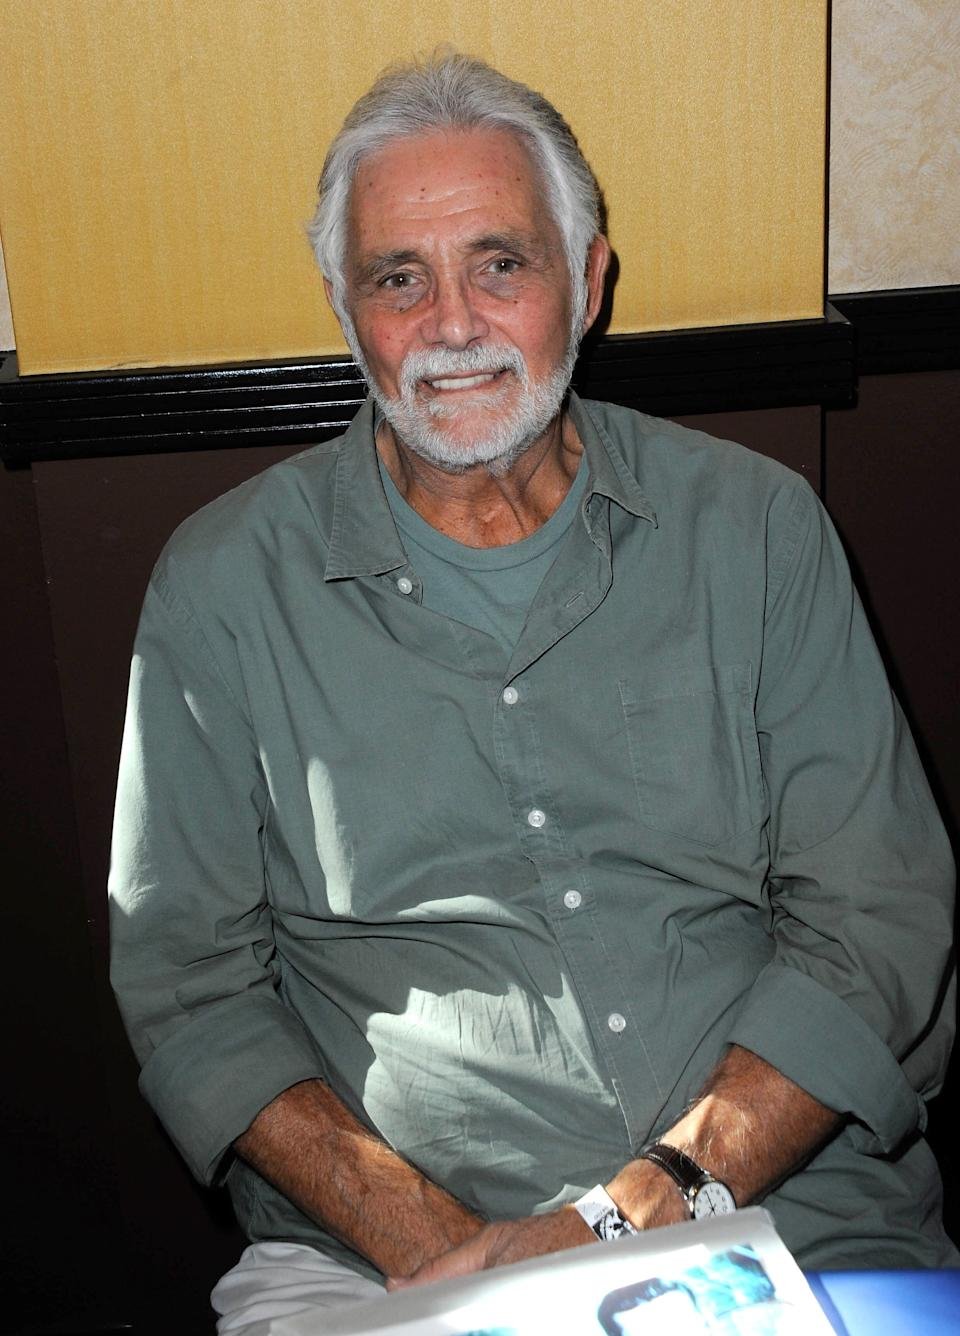 <strong>David Hedison (1927-2019)</strong><br />He was best known for his role as CIA agent Felix Leiter in the 1973 James Bond film Live And Let Die, a role he reprised 16 years later in Licence To Kill.